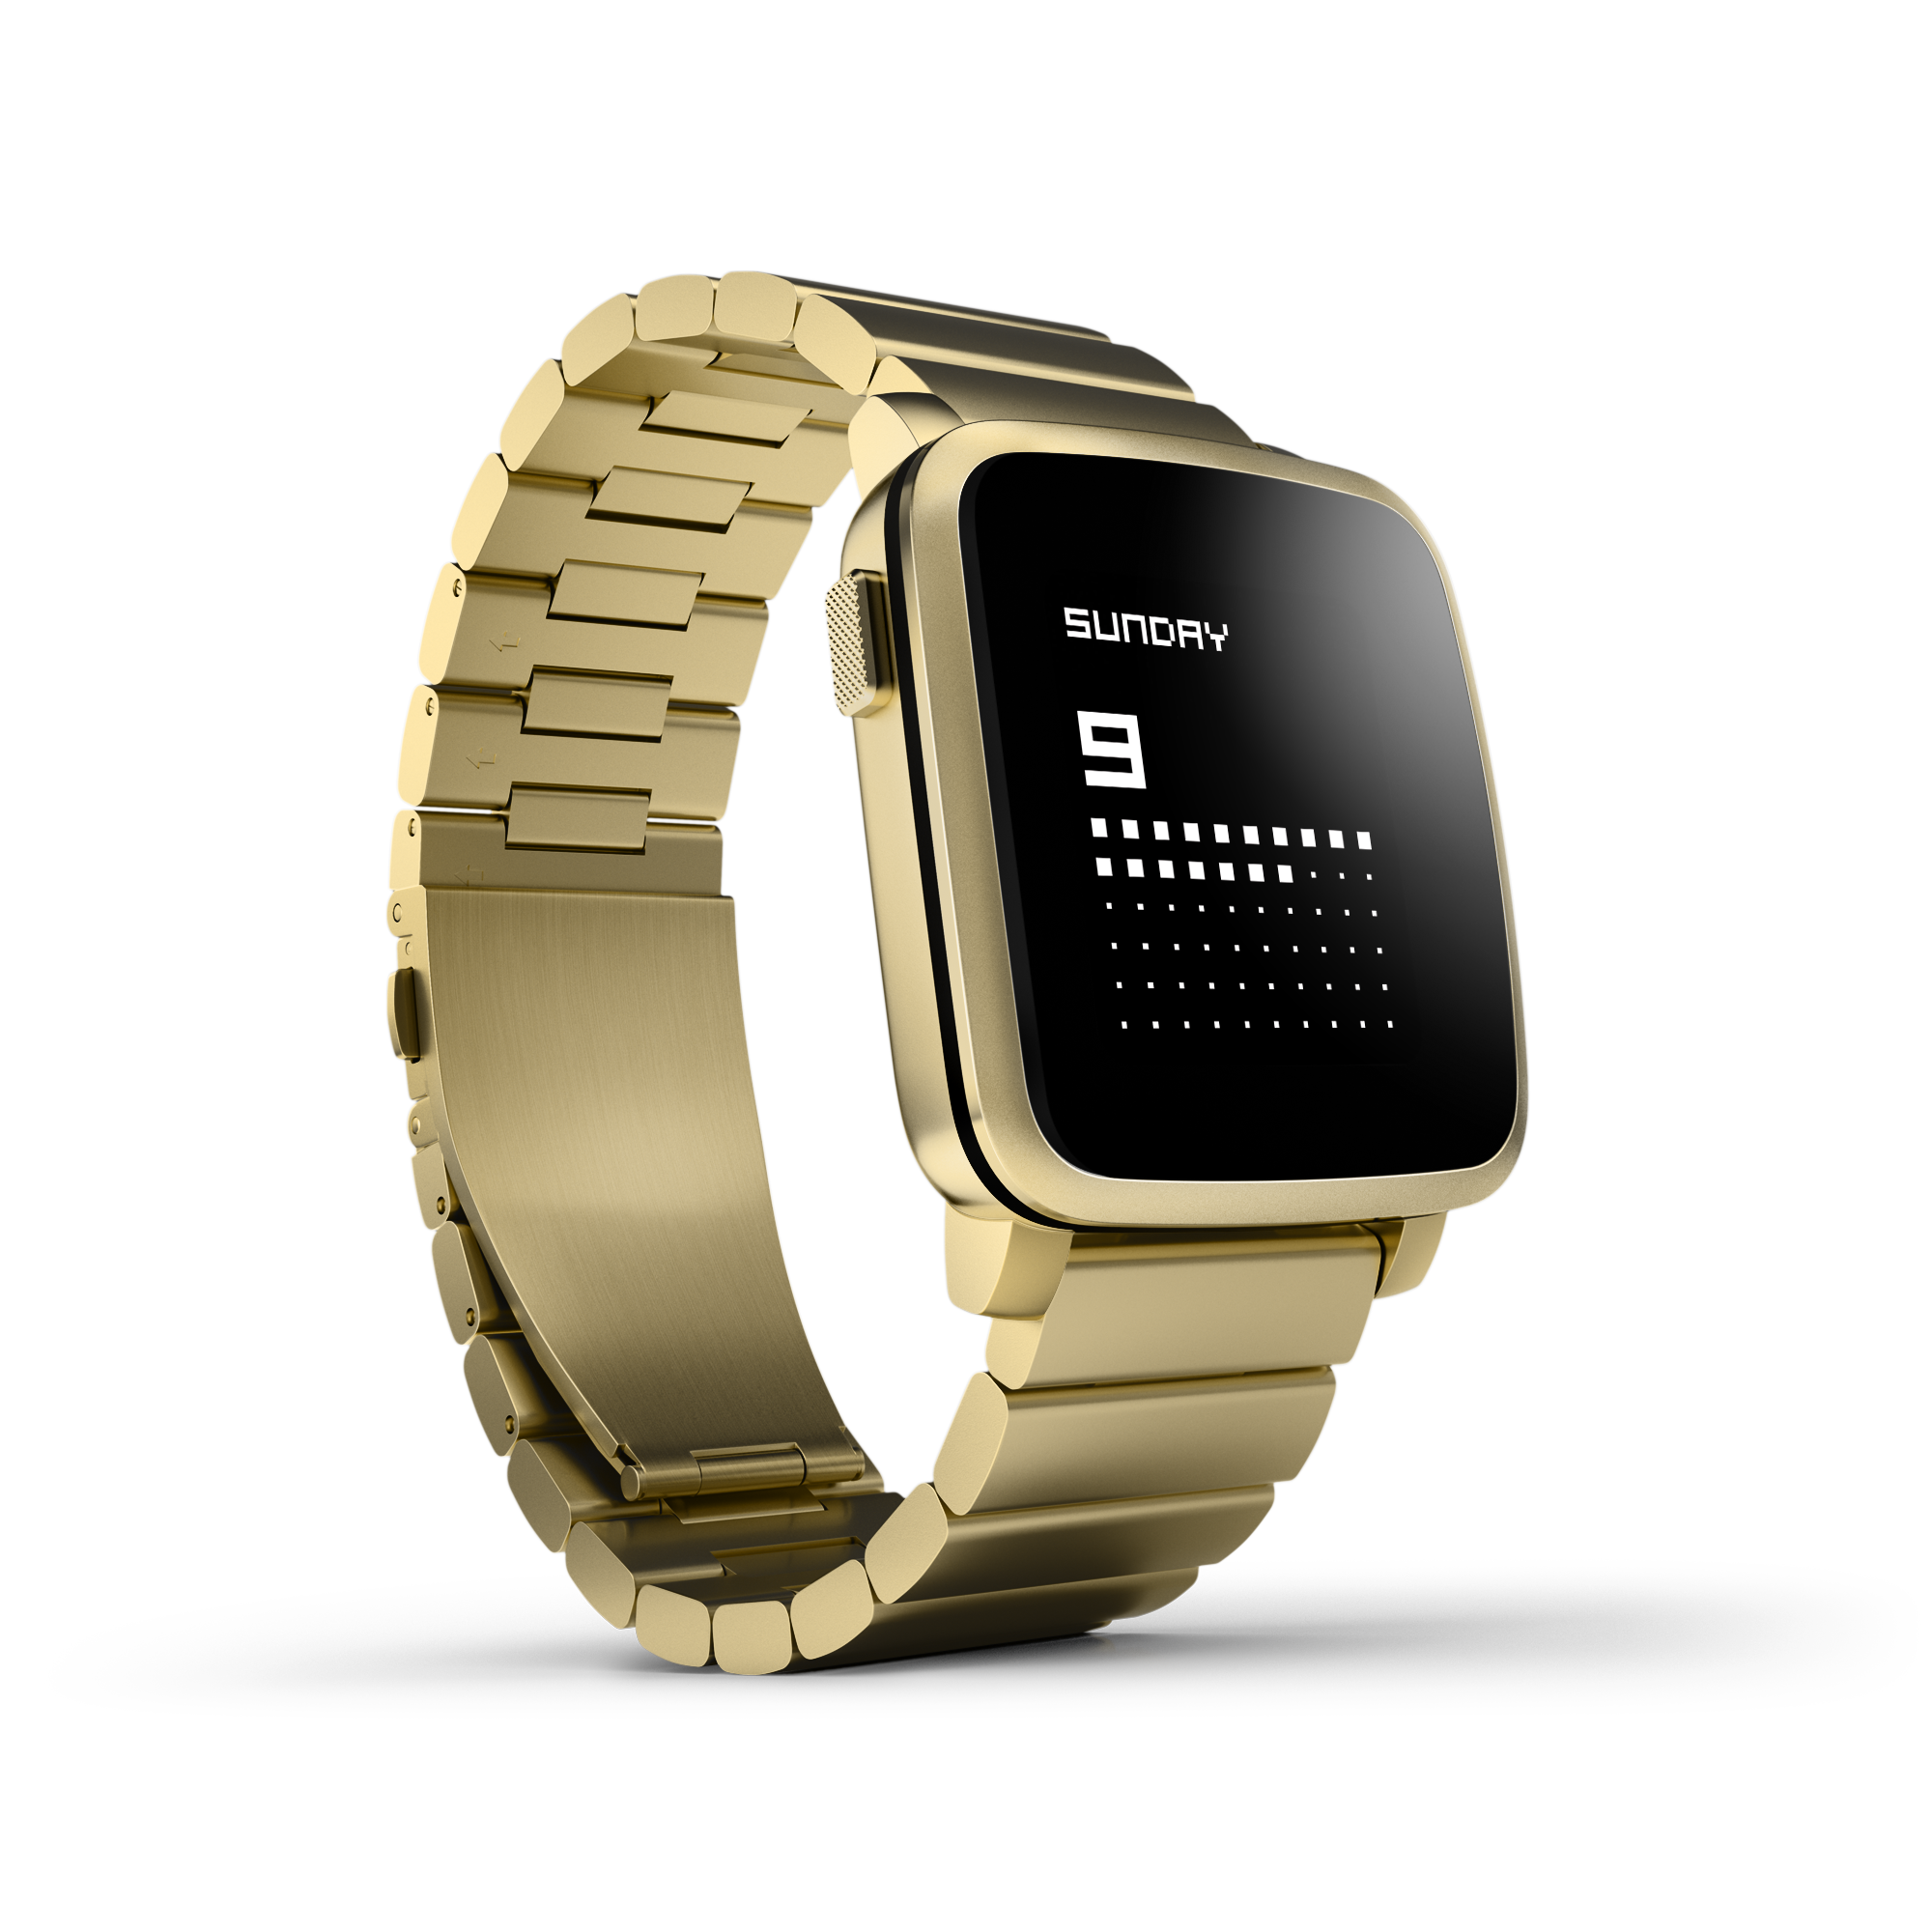 Pebble smartwatch